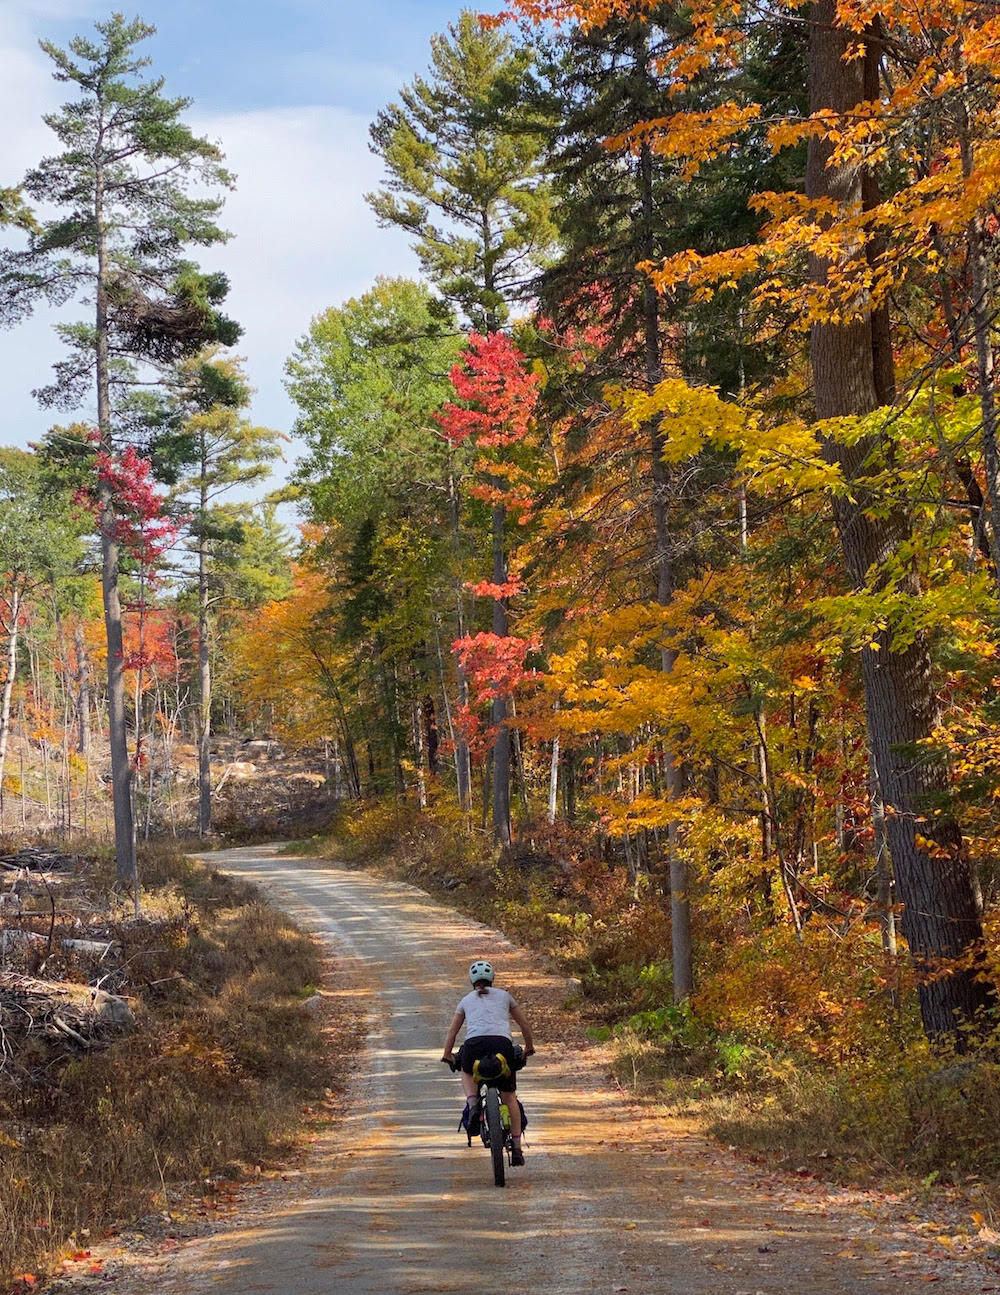 A cyclist riding on a gravel road in forest in autumn.